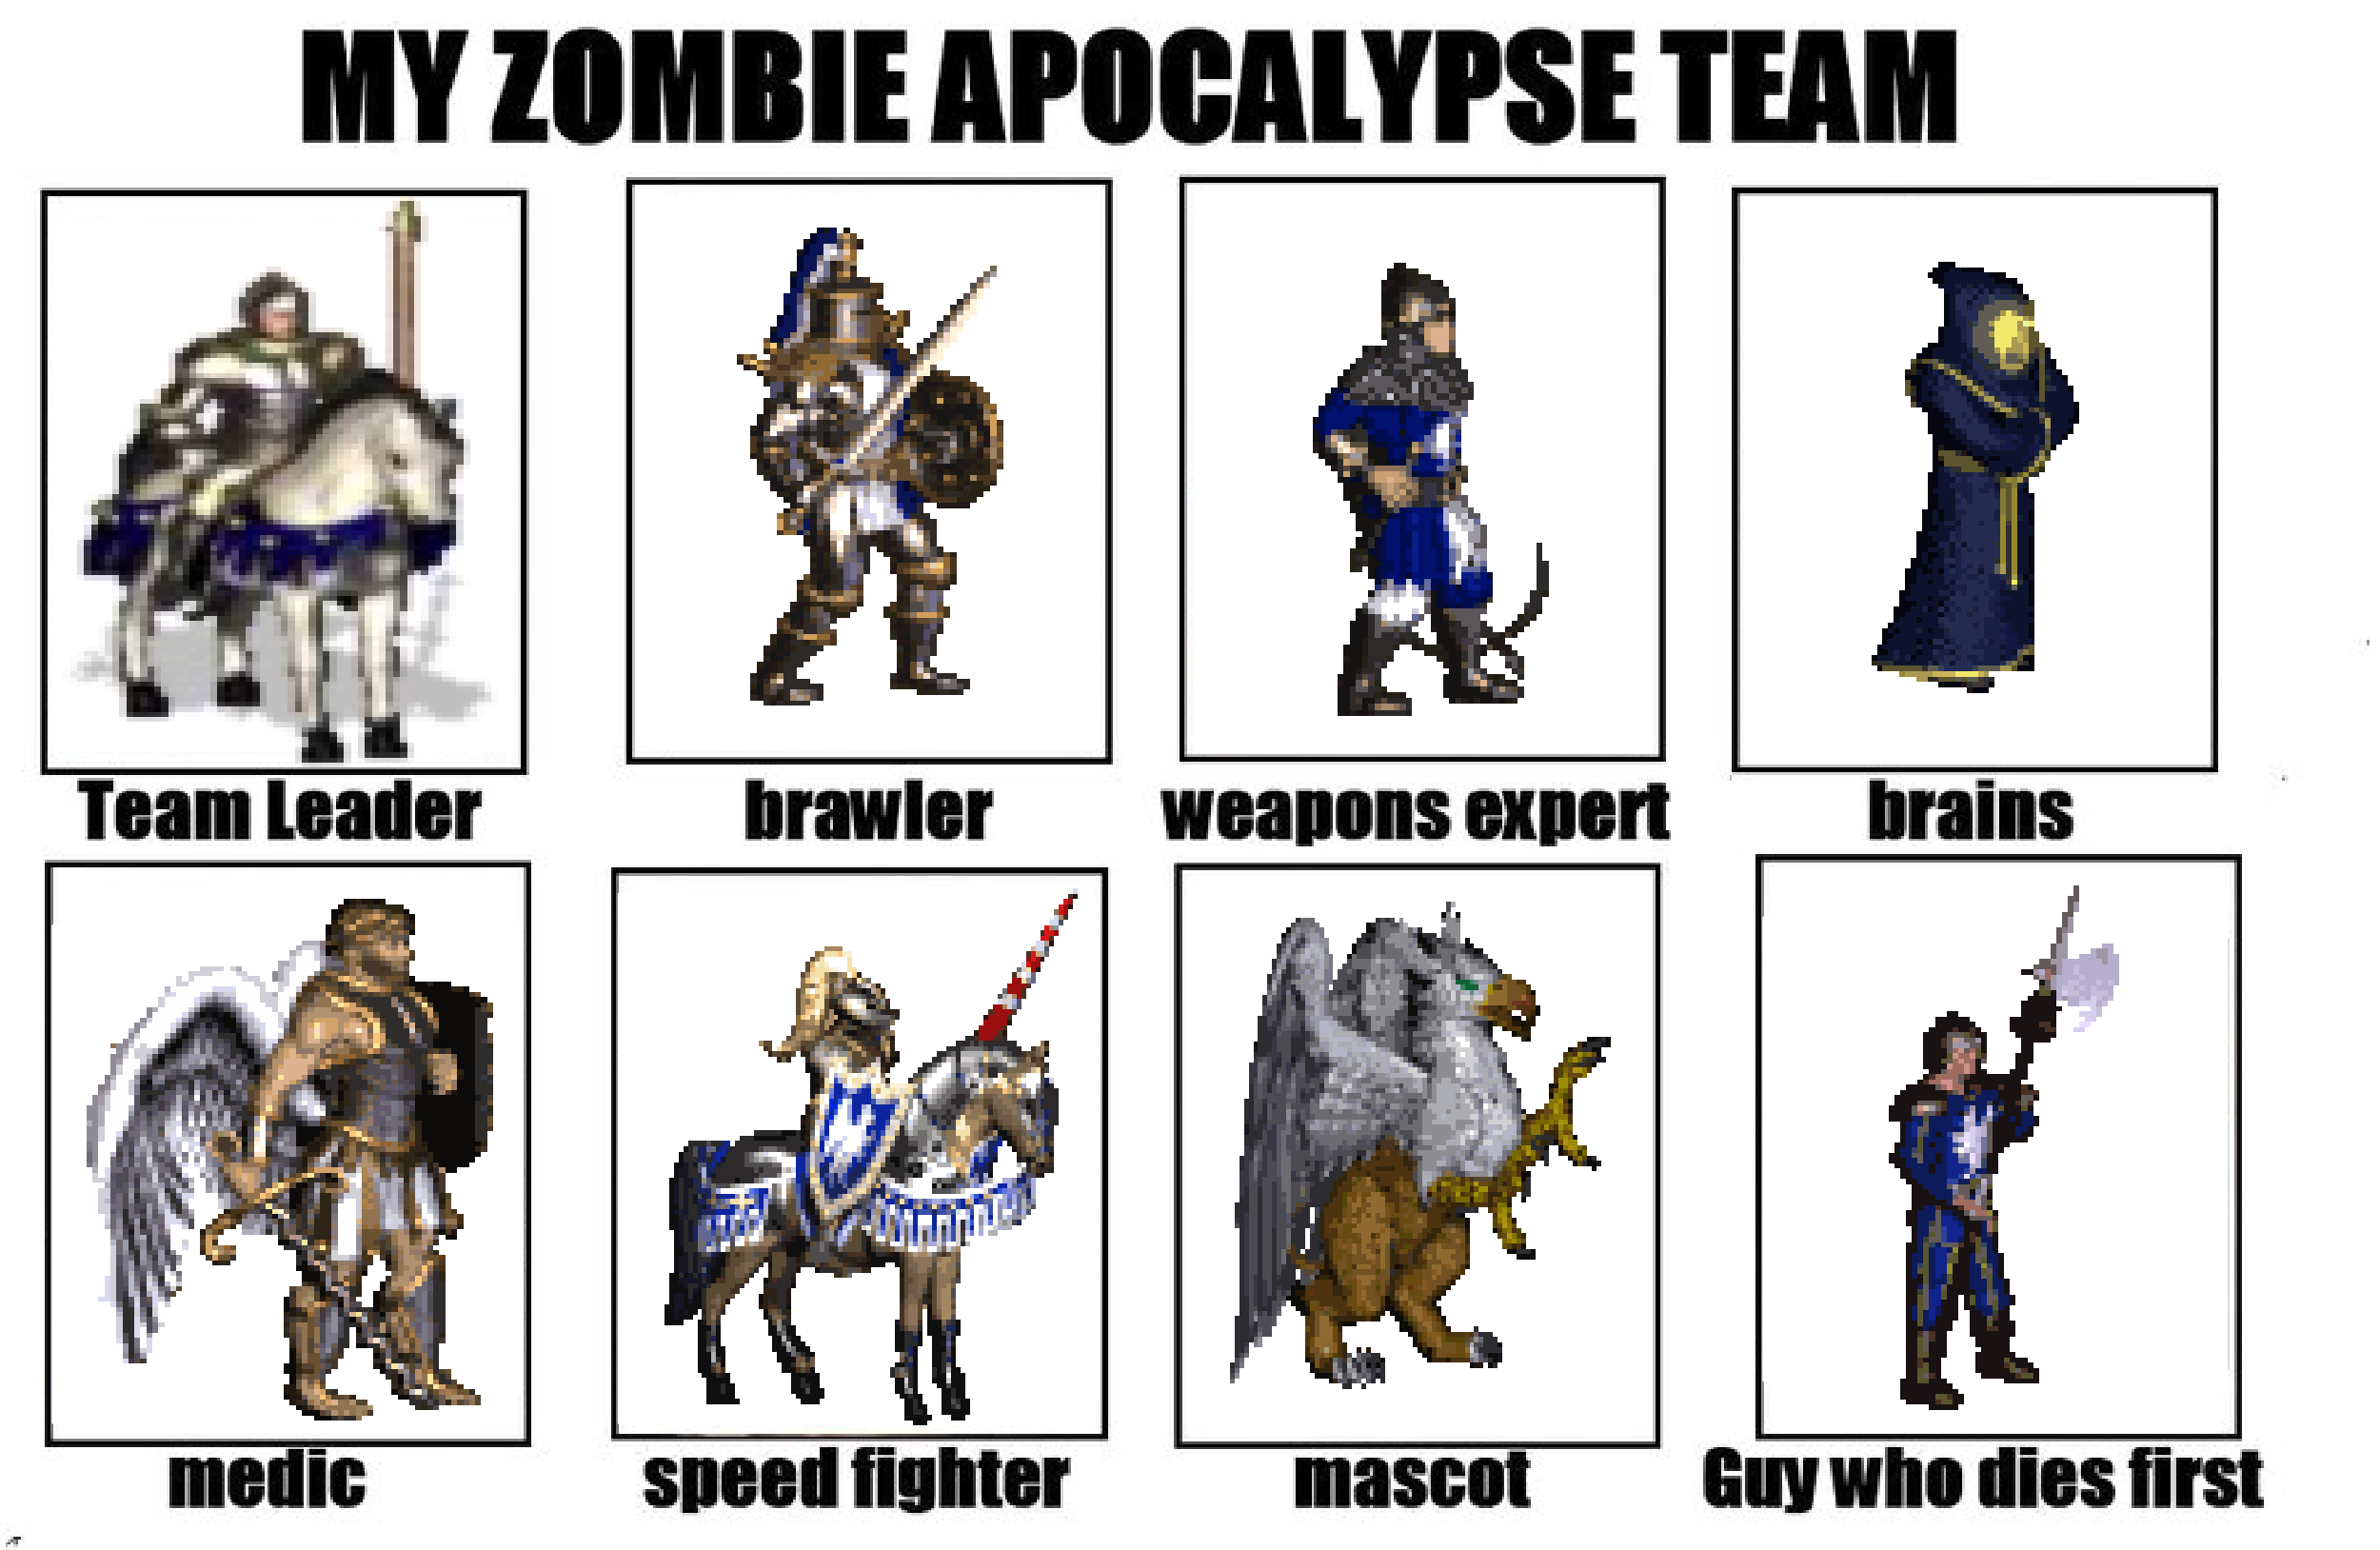 My zombie apocalypse team team leader brawler weapons expert brains medic speed fighter mascot guy who